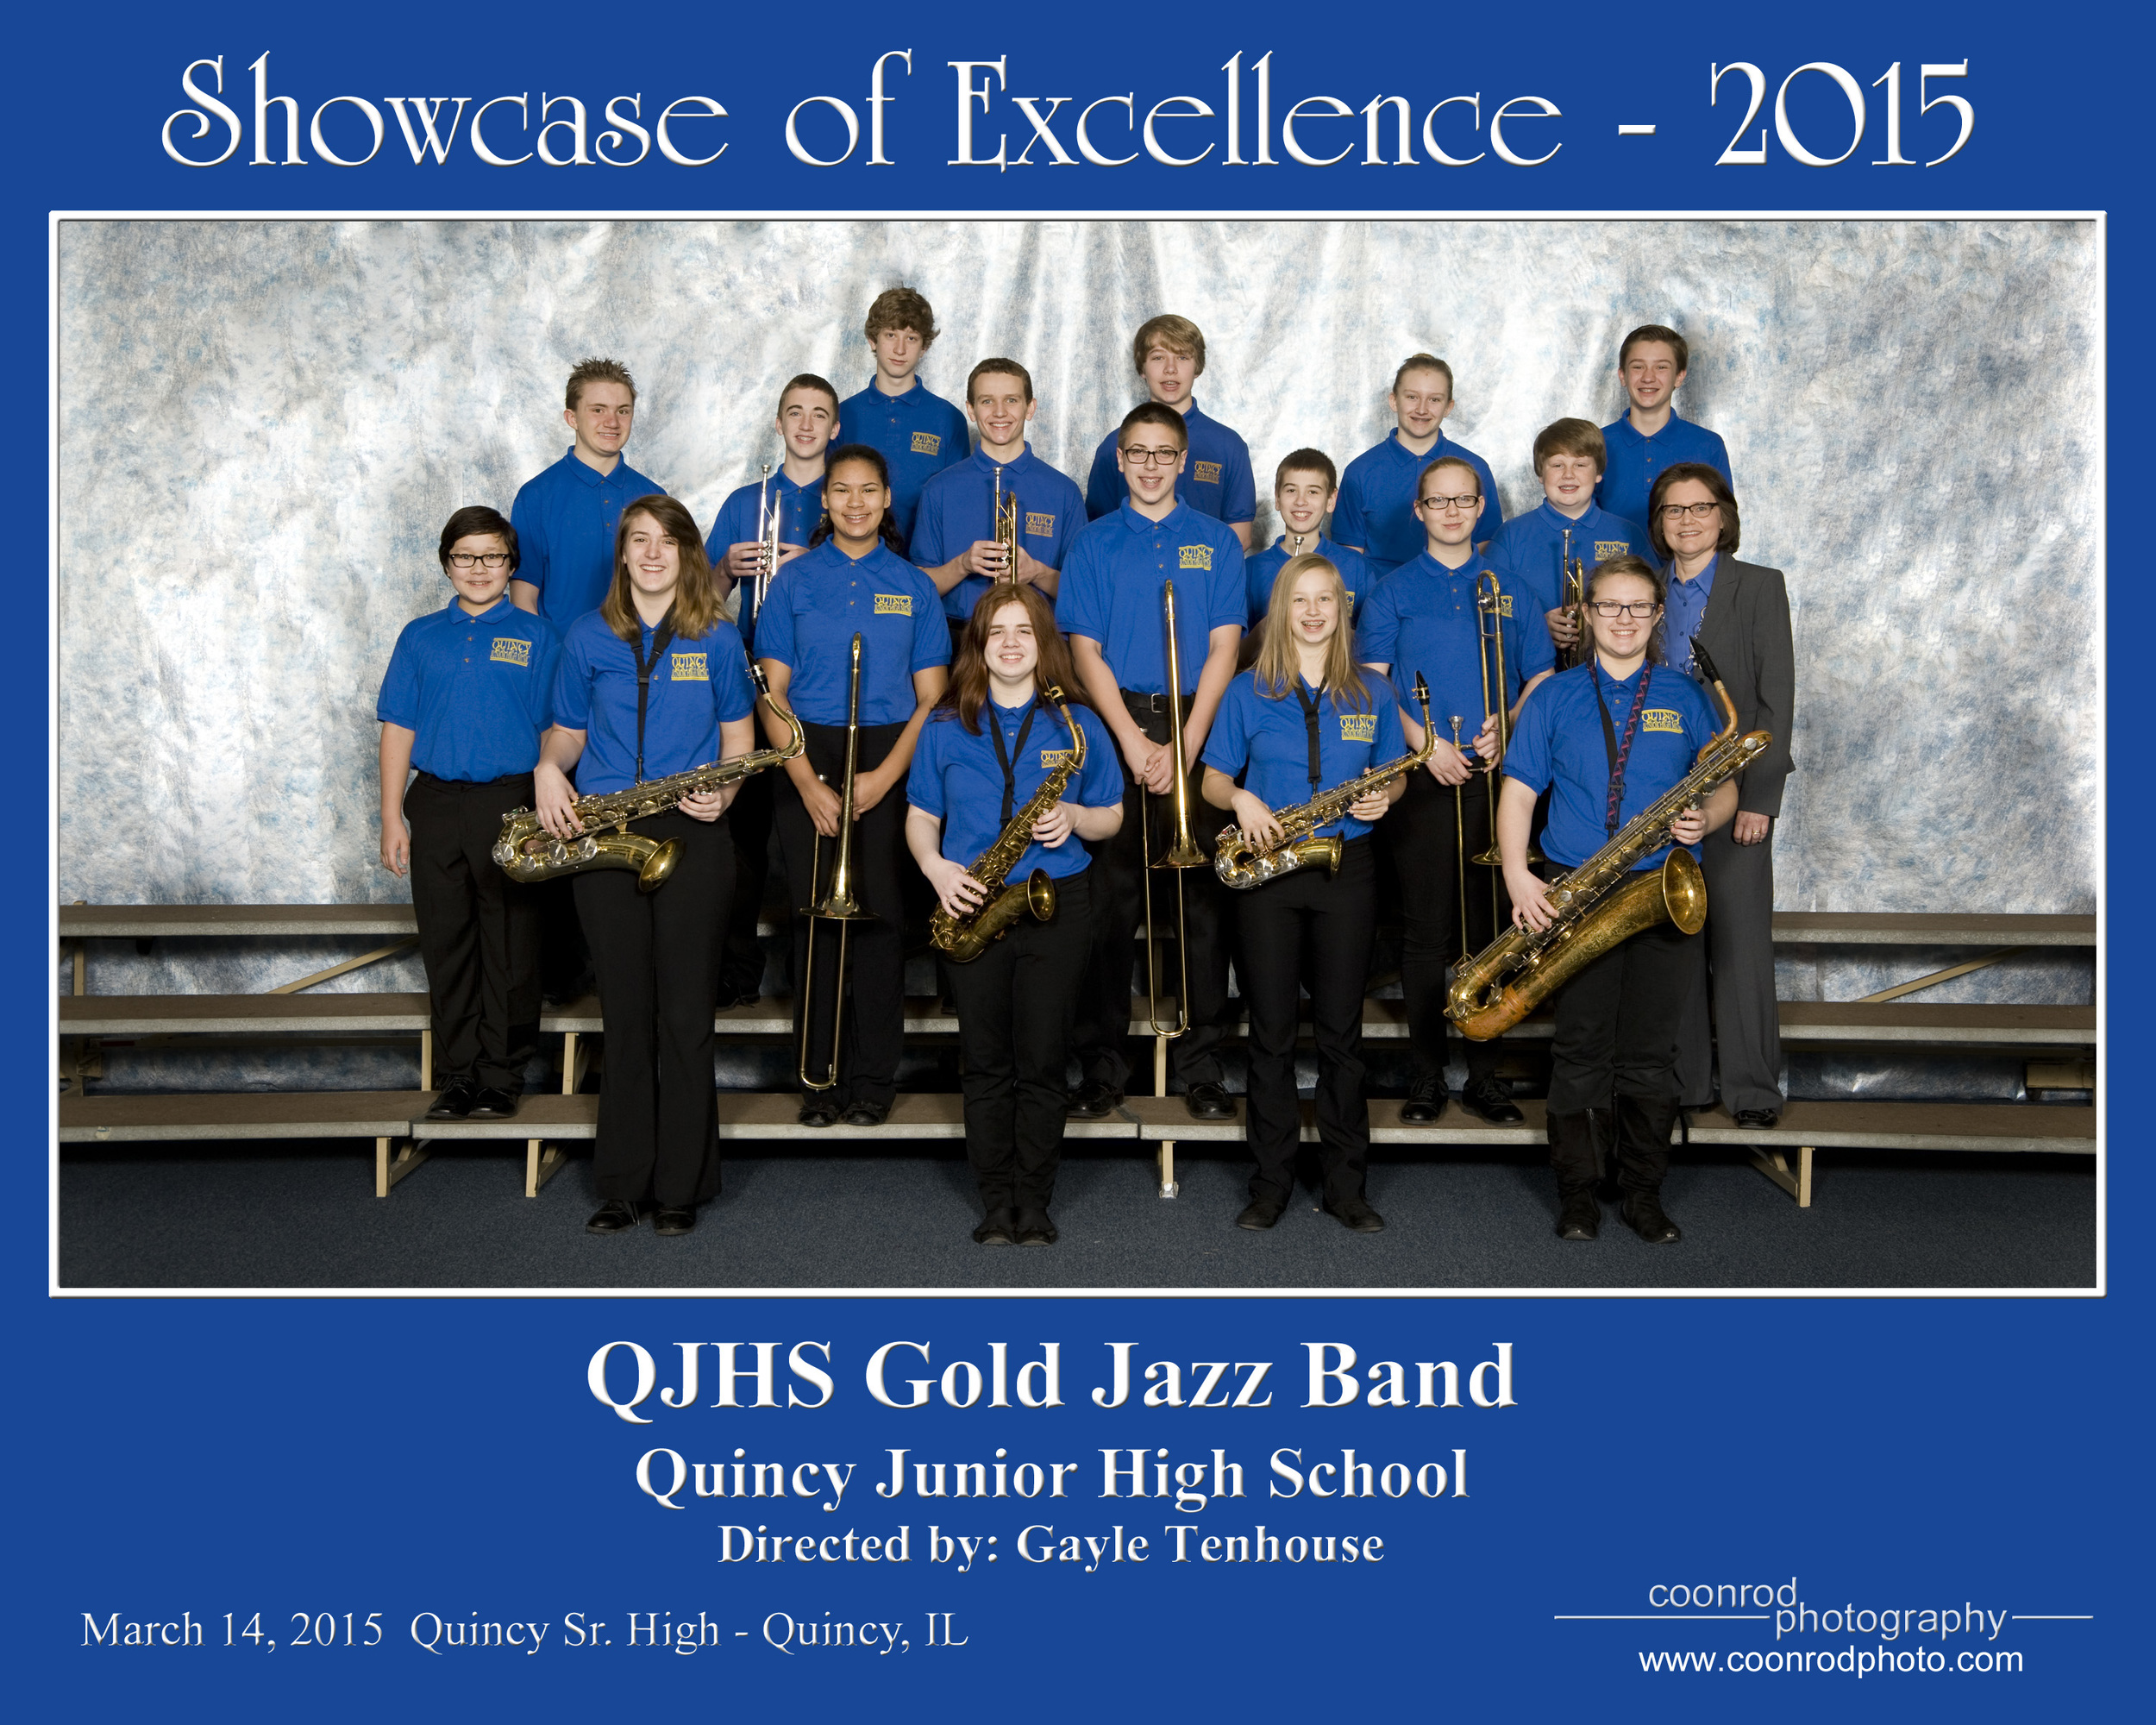 01 QJHS Gold Jazz Band.jpg